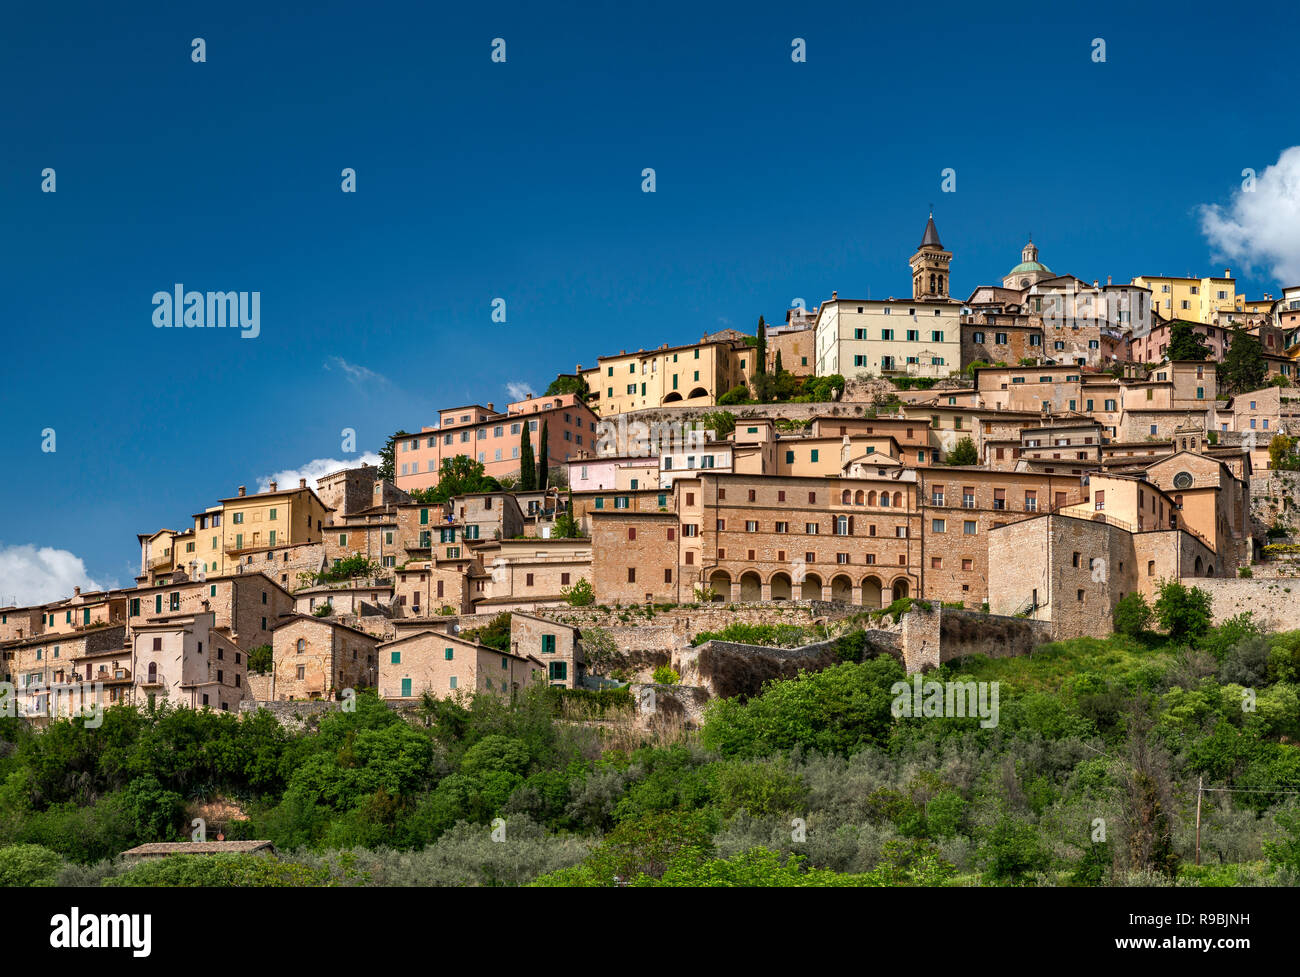 Hilltown of Trevi, Umbria, Italy - Stock Image